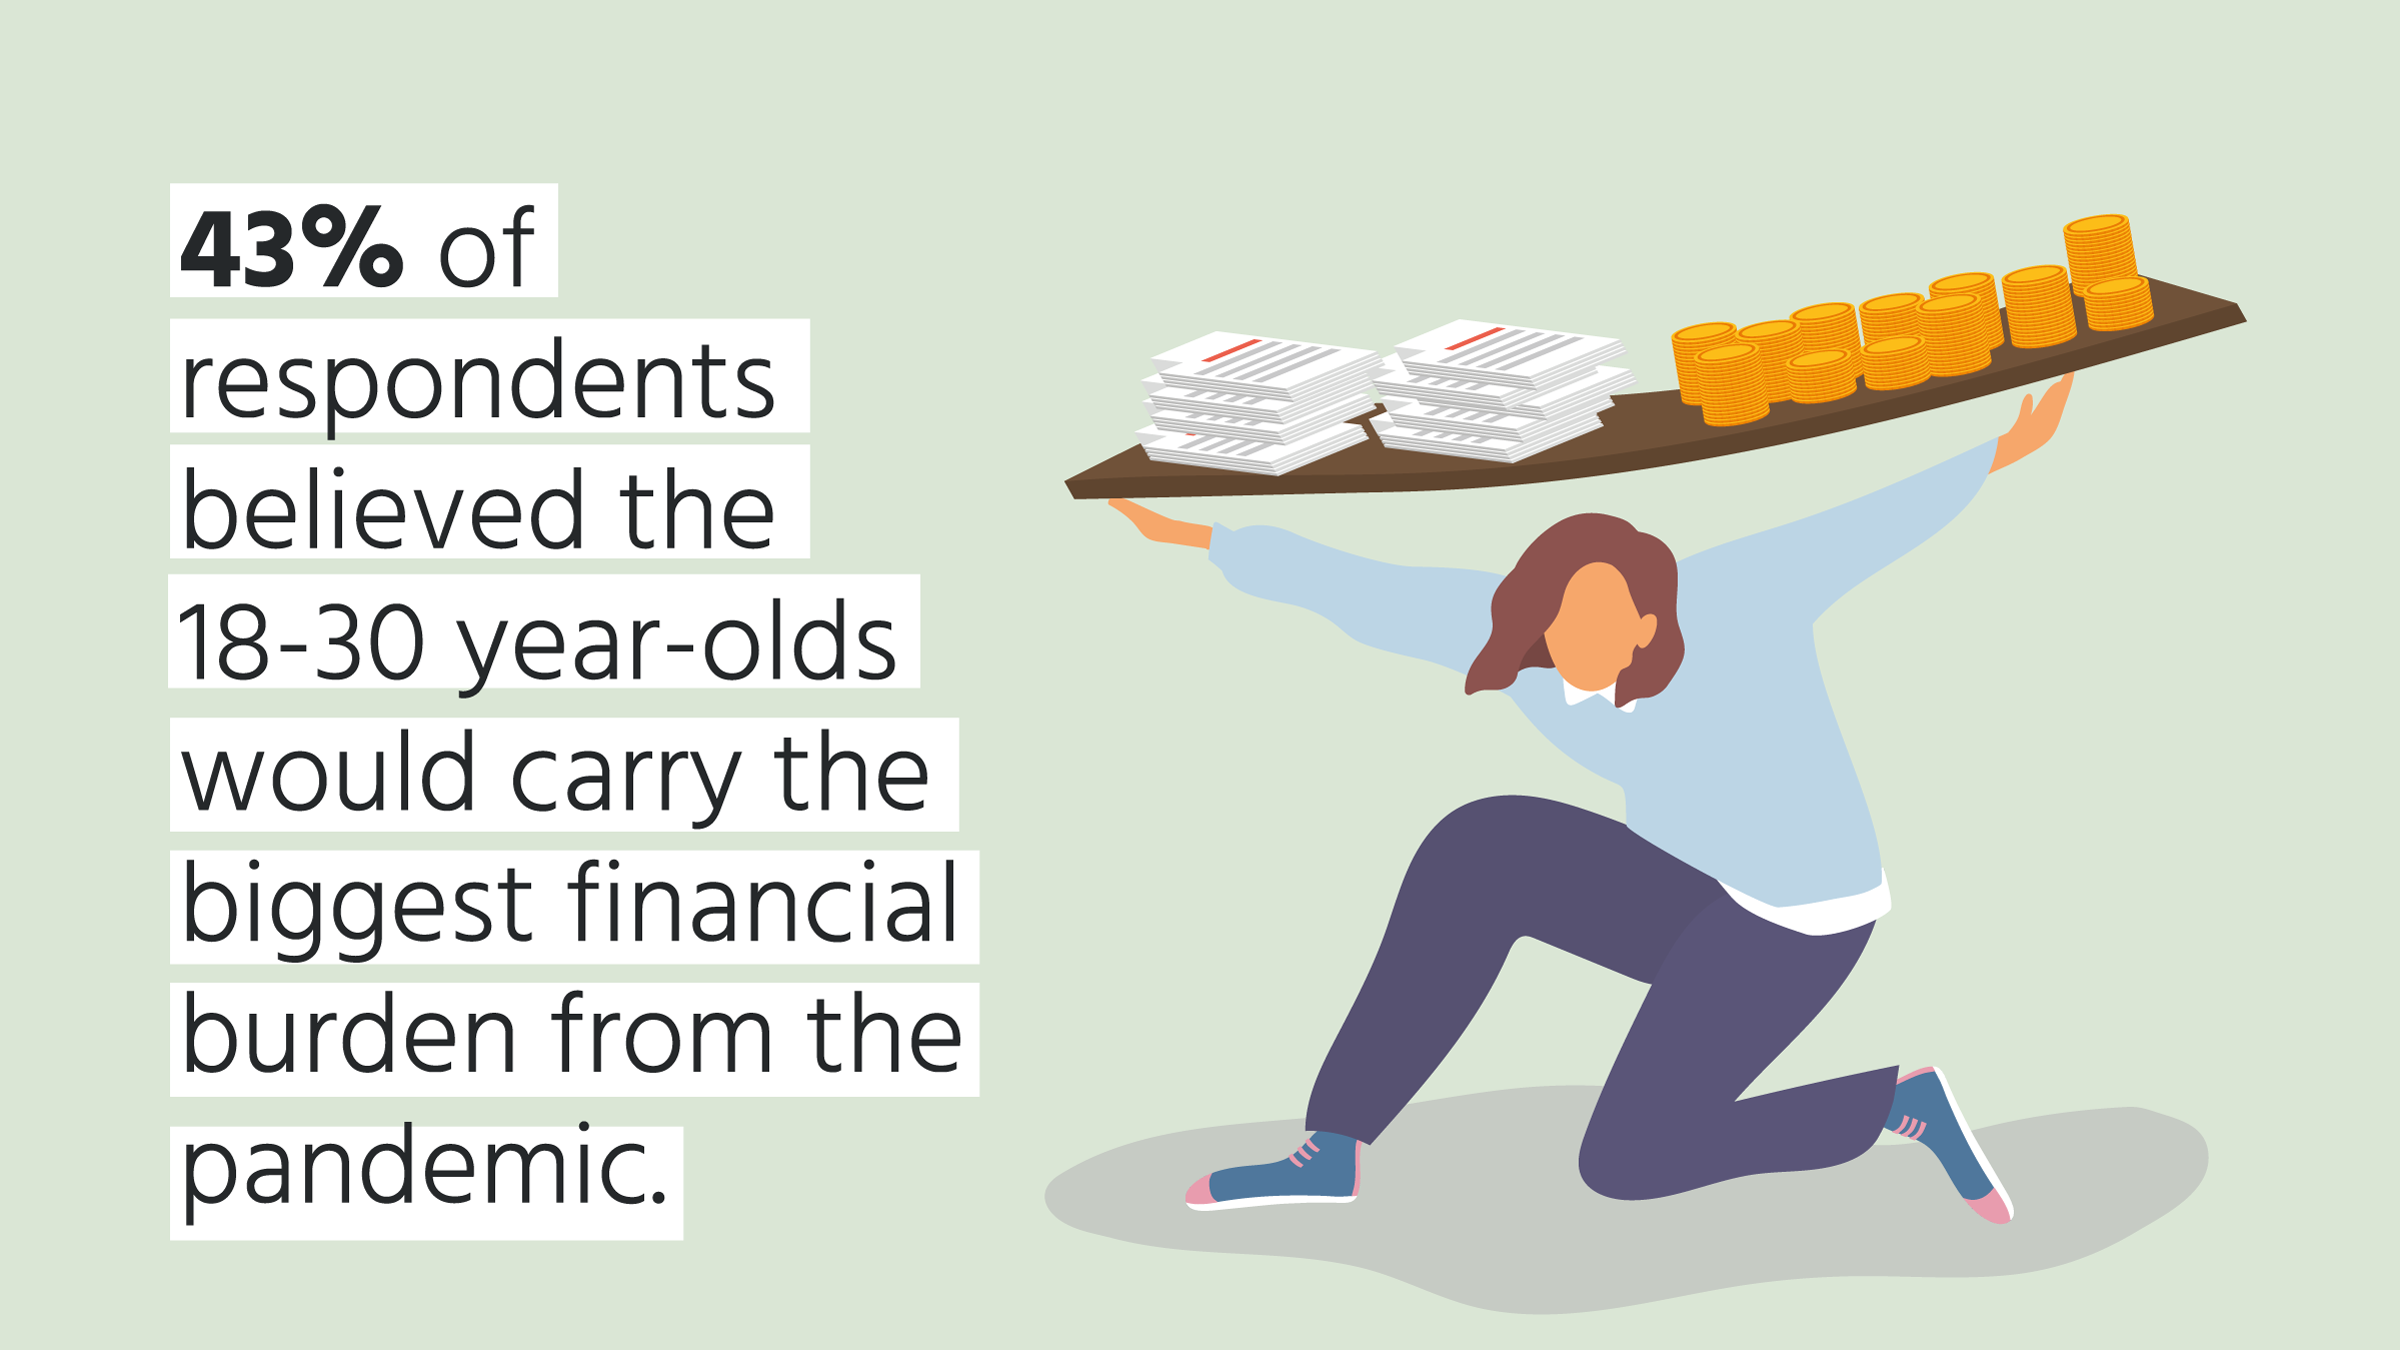 Illustration of young person carrying financial burden